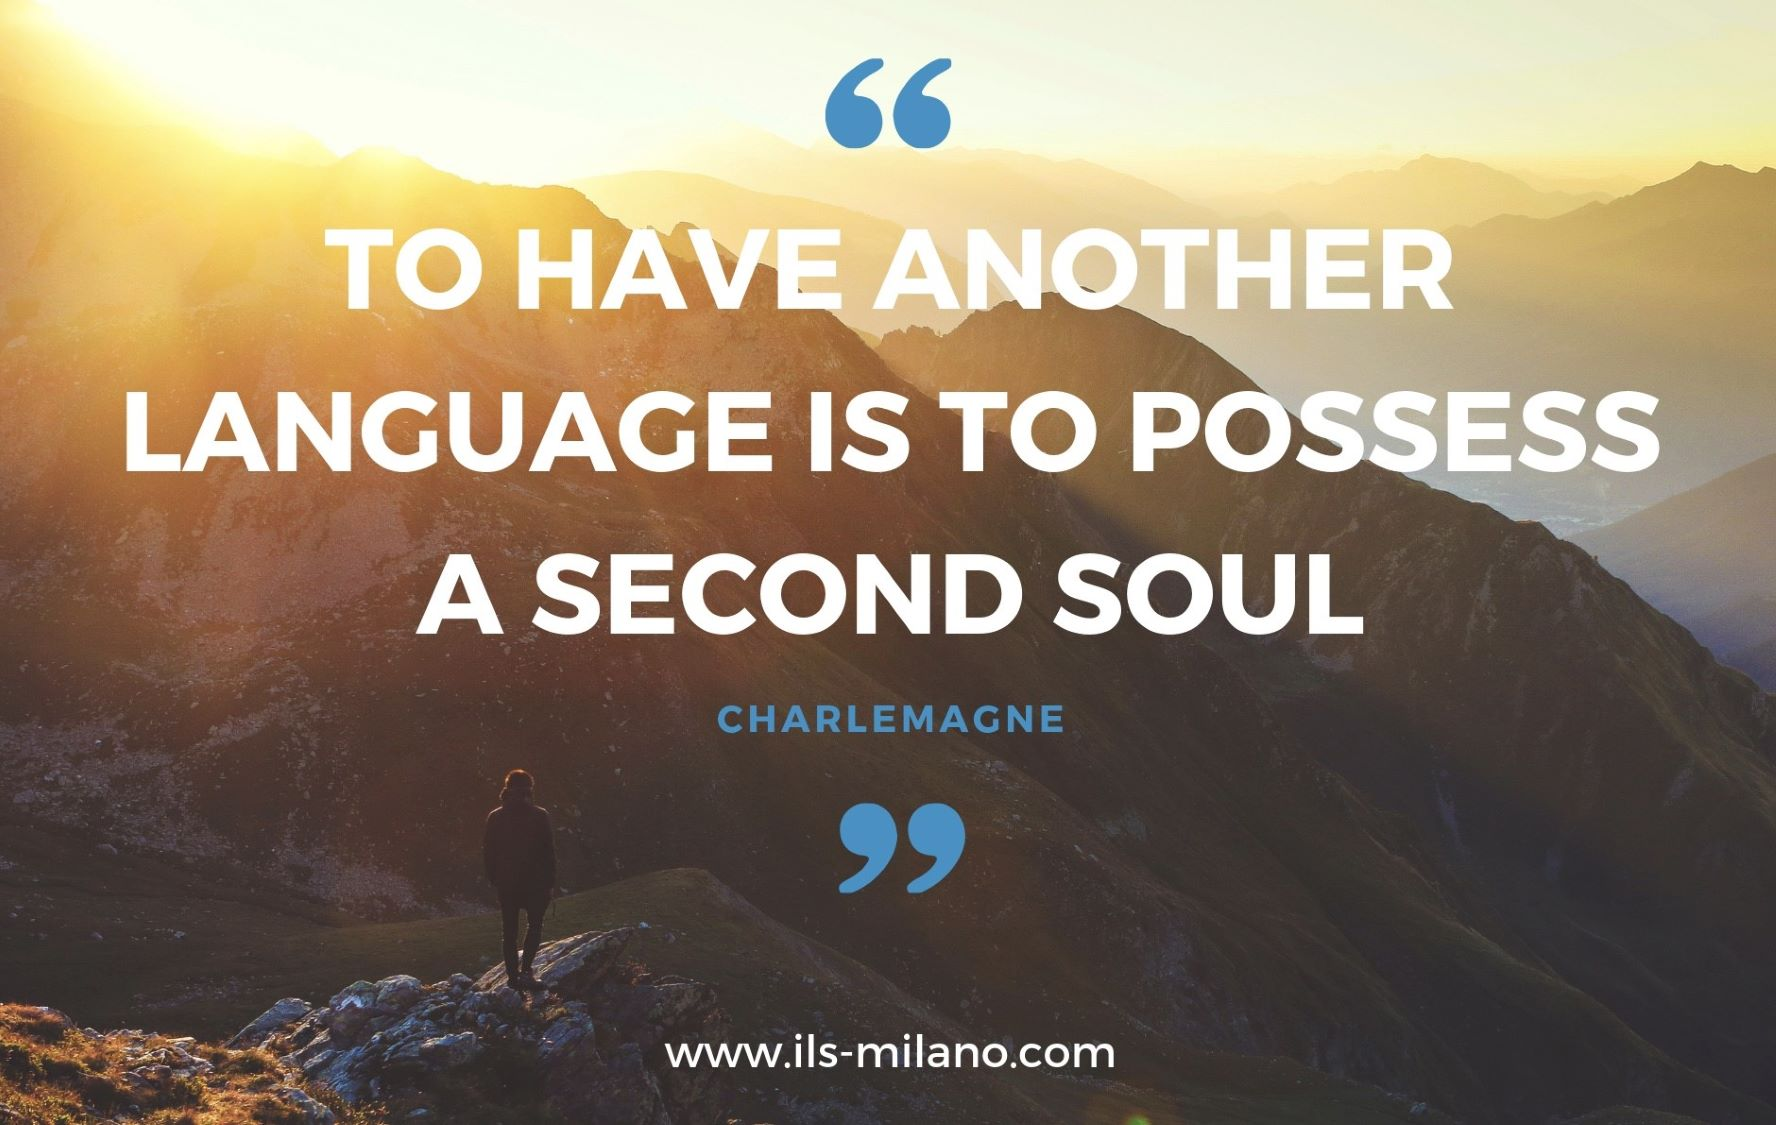 To have another language is to possess a second soul charlemagne ils milano motivation for language learning ils milano language school milan italy